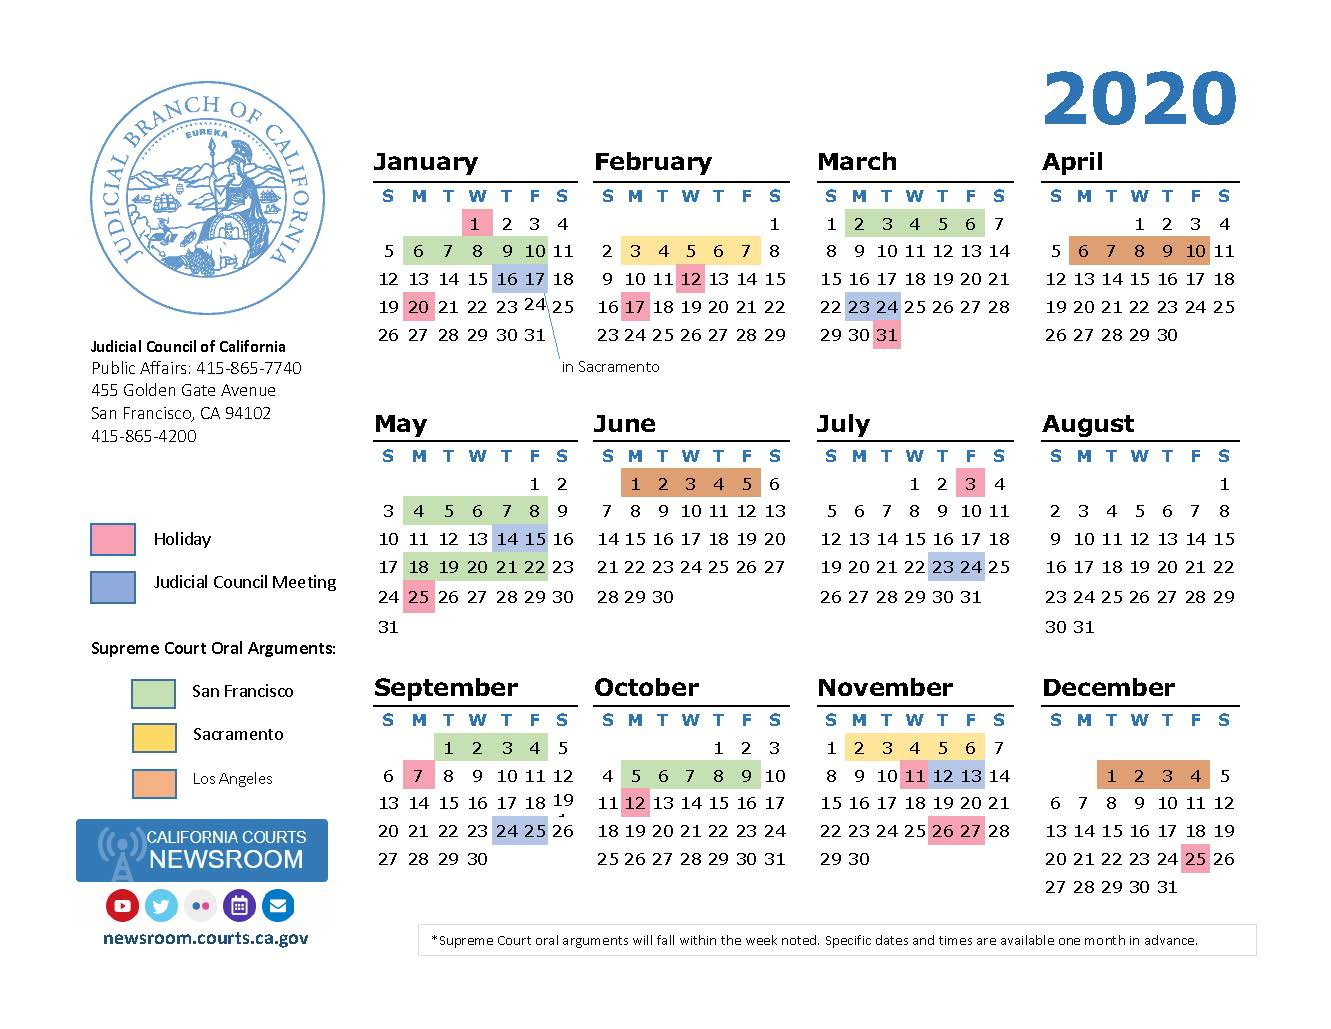 2020 California Courts Calendar | California Courts Newsroom regarding Uc Berkeley Calendar 2020